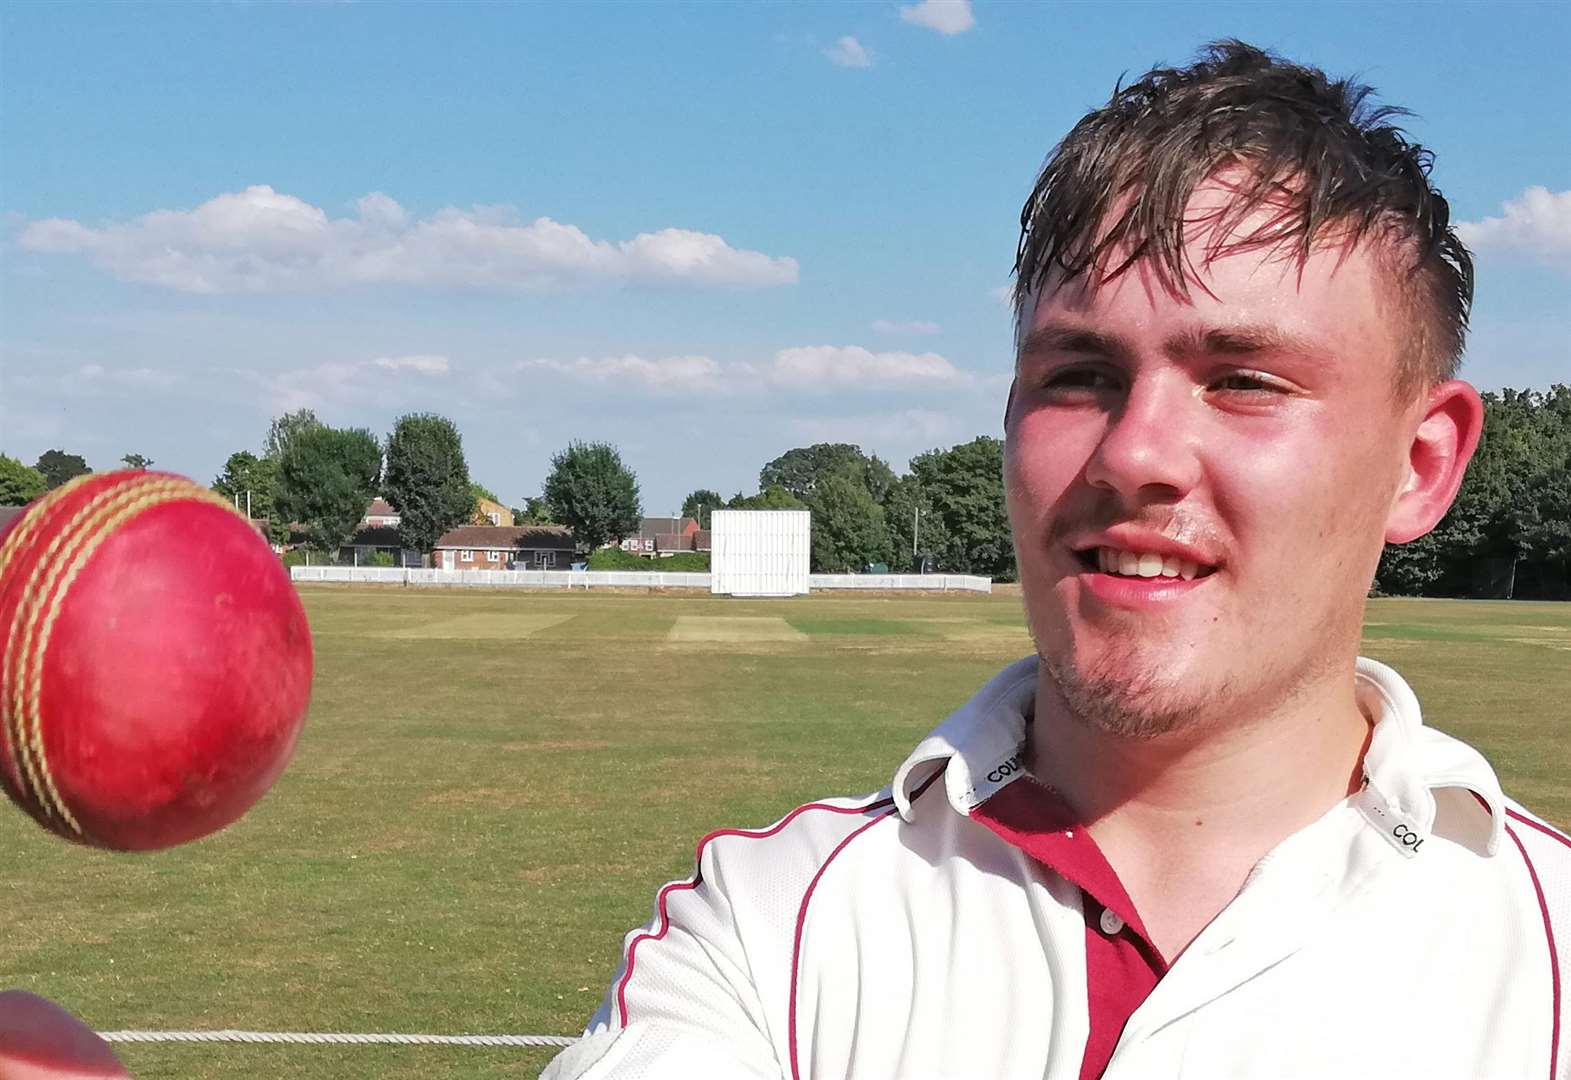 March Town's Curtis bags best bowling 7-for against Ufford Park in Rutland League